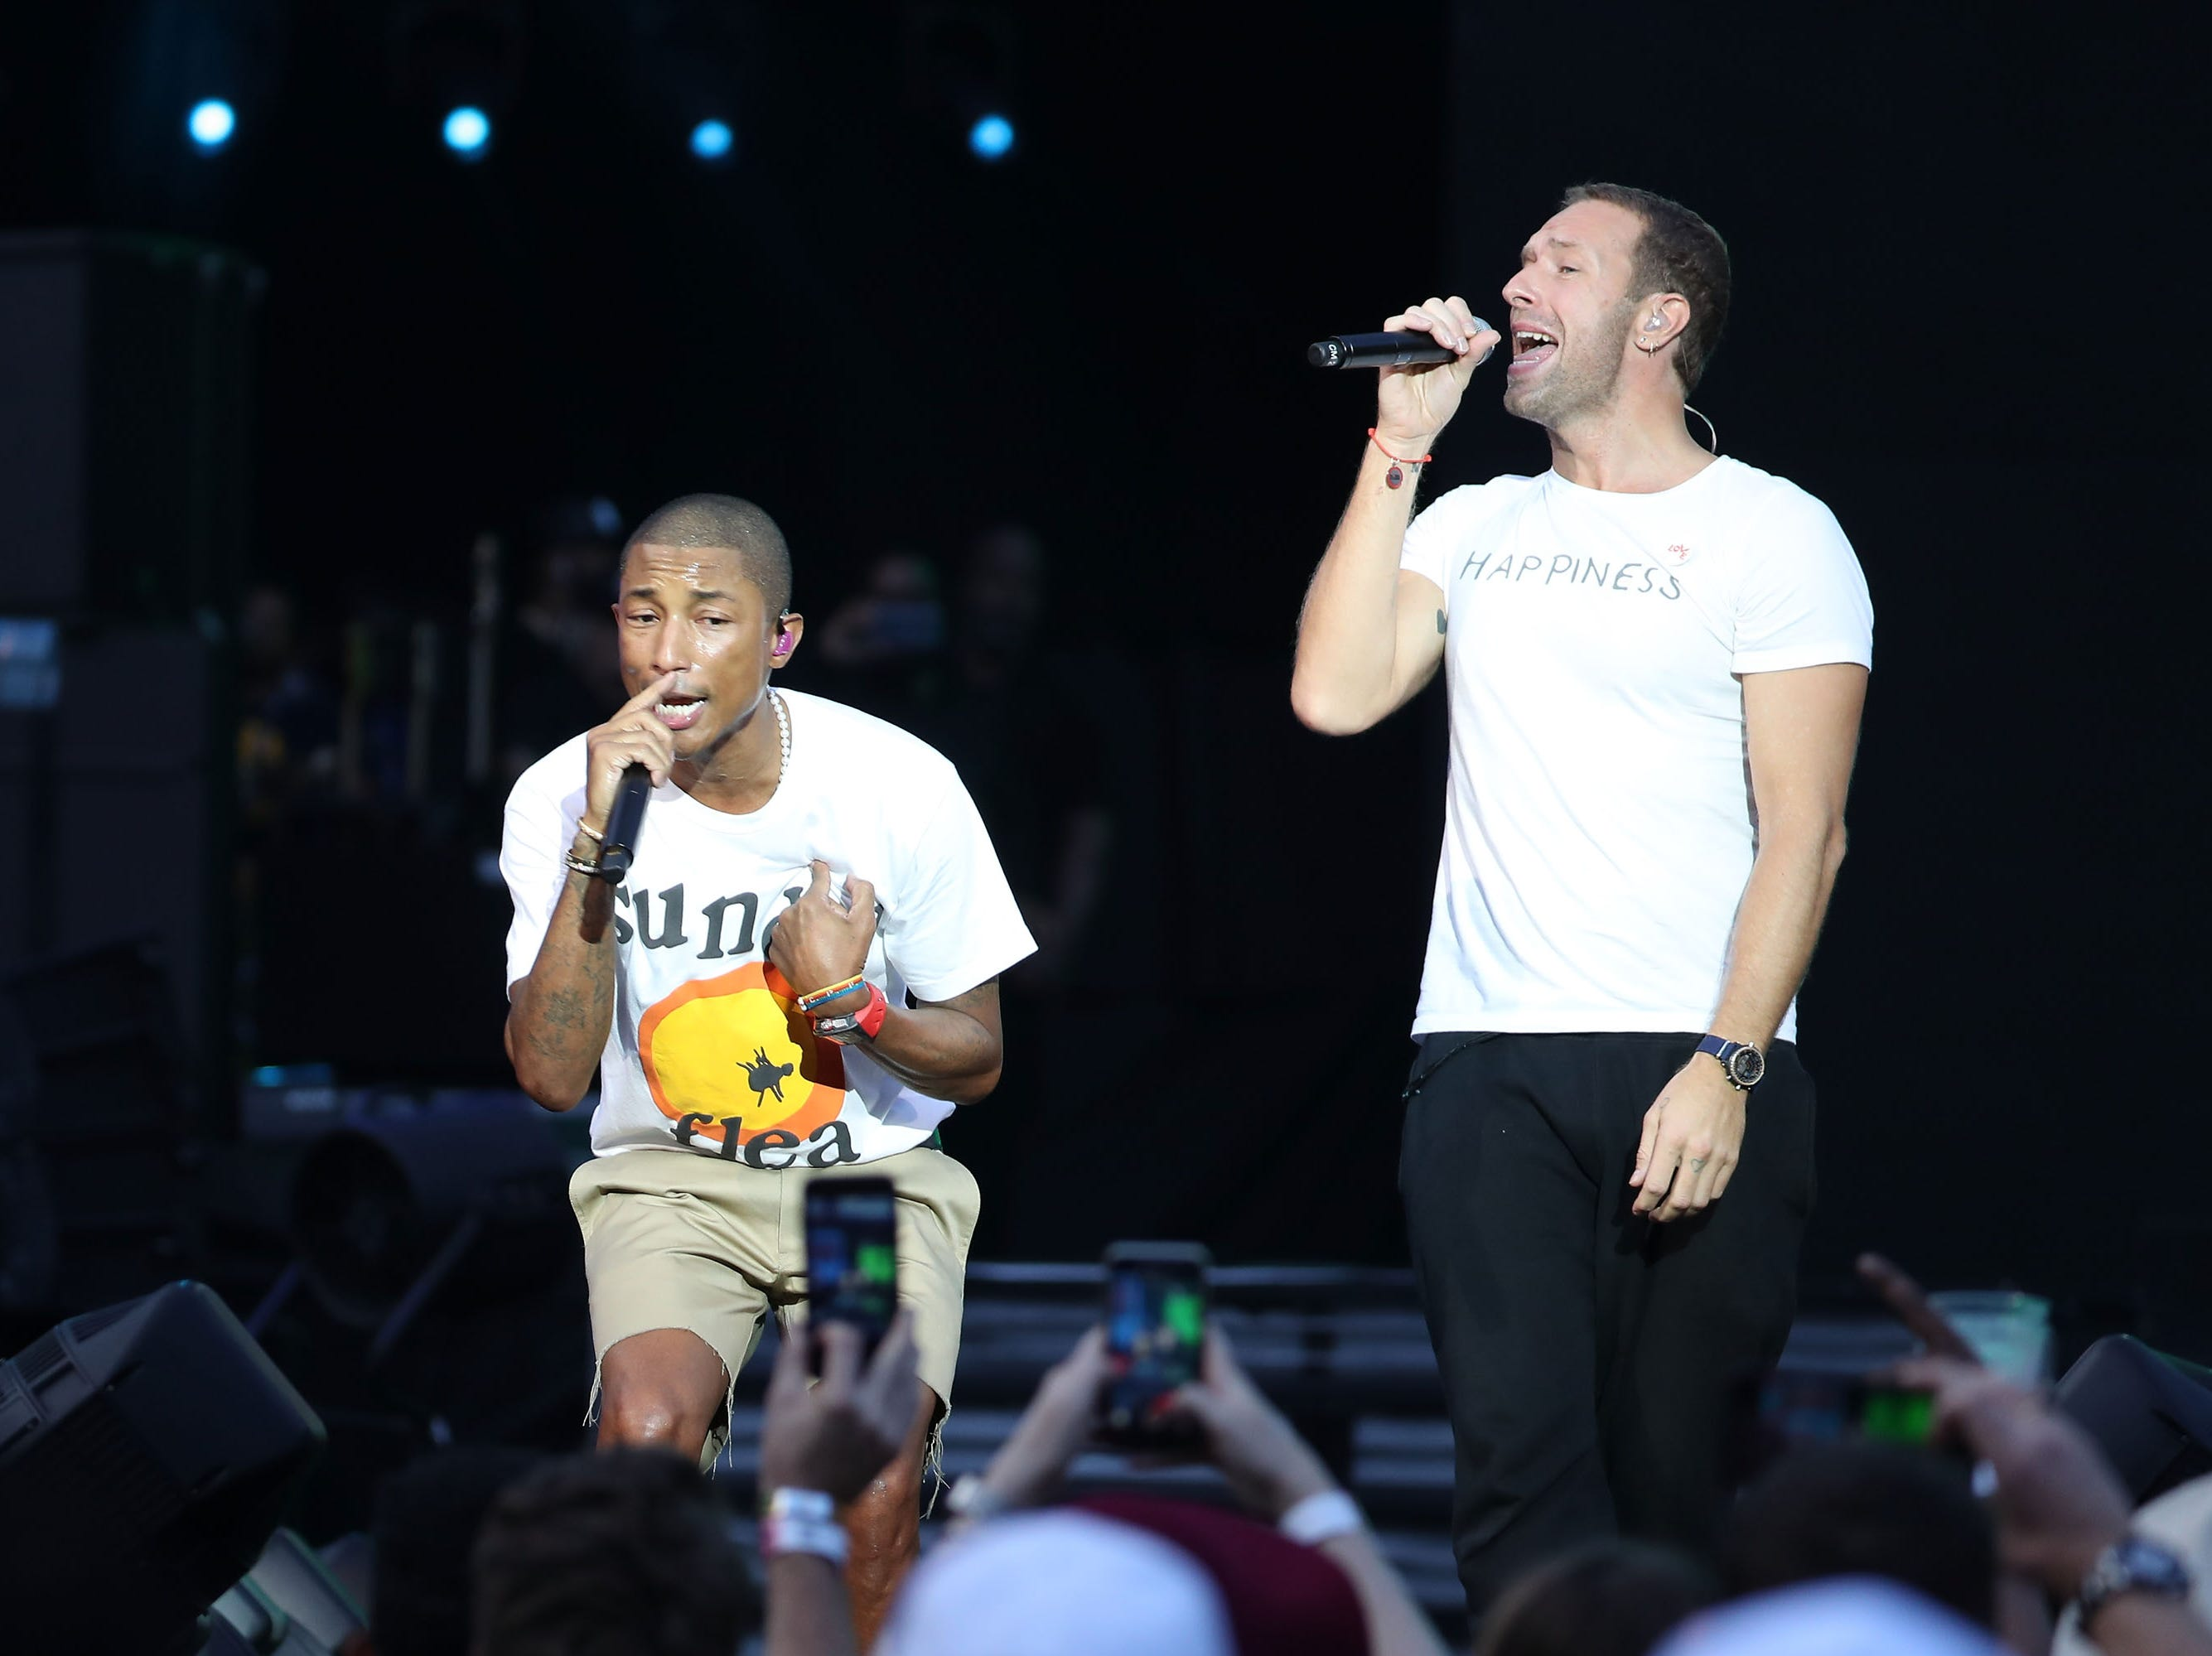 JOHANNESBURG, SOUTH AFRICA - DECEMBER 02:  Pharrell Williams and Chris Martin perform during the Global Citizen Festival: Mandela 100 at FNB Stadium on December 2, 2018 in Johannesburg, South Africa.  (Photo by Jemal Countess/Getty Images for Global Citizen Festival: Mandela 100) ORG XMIT: 775264426 ORIG FILE ID: 1067682516